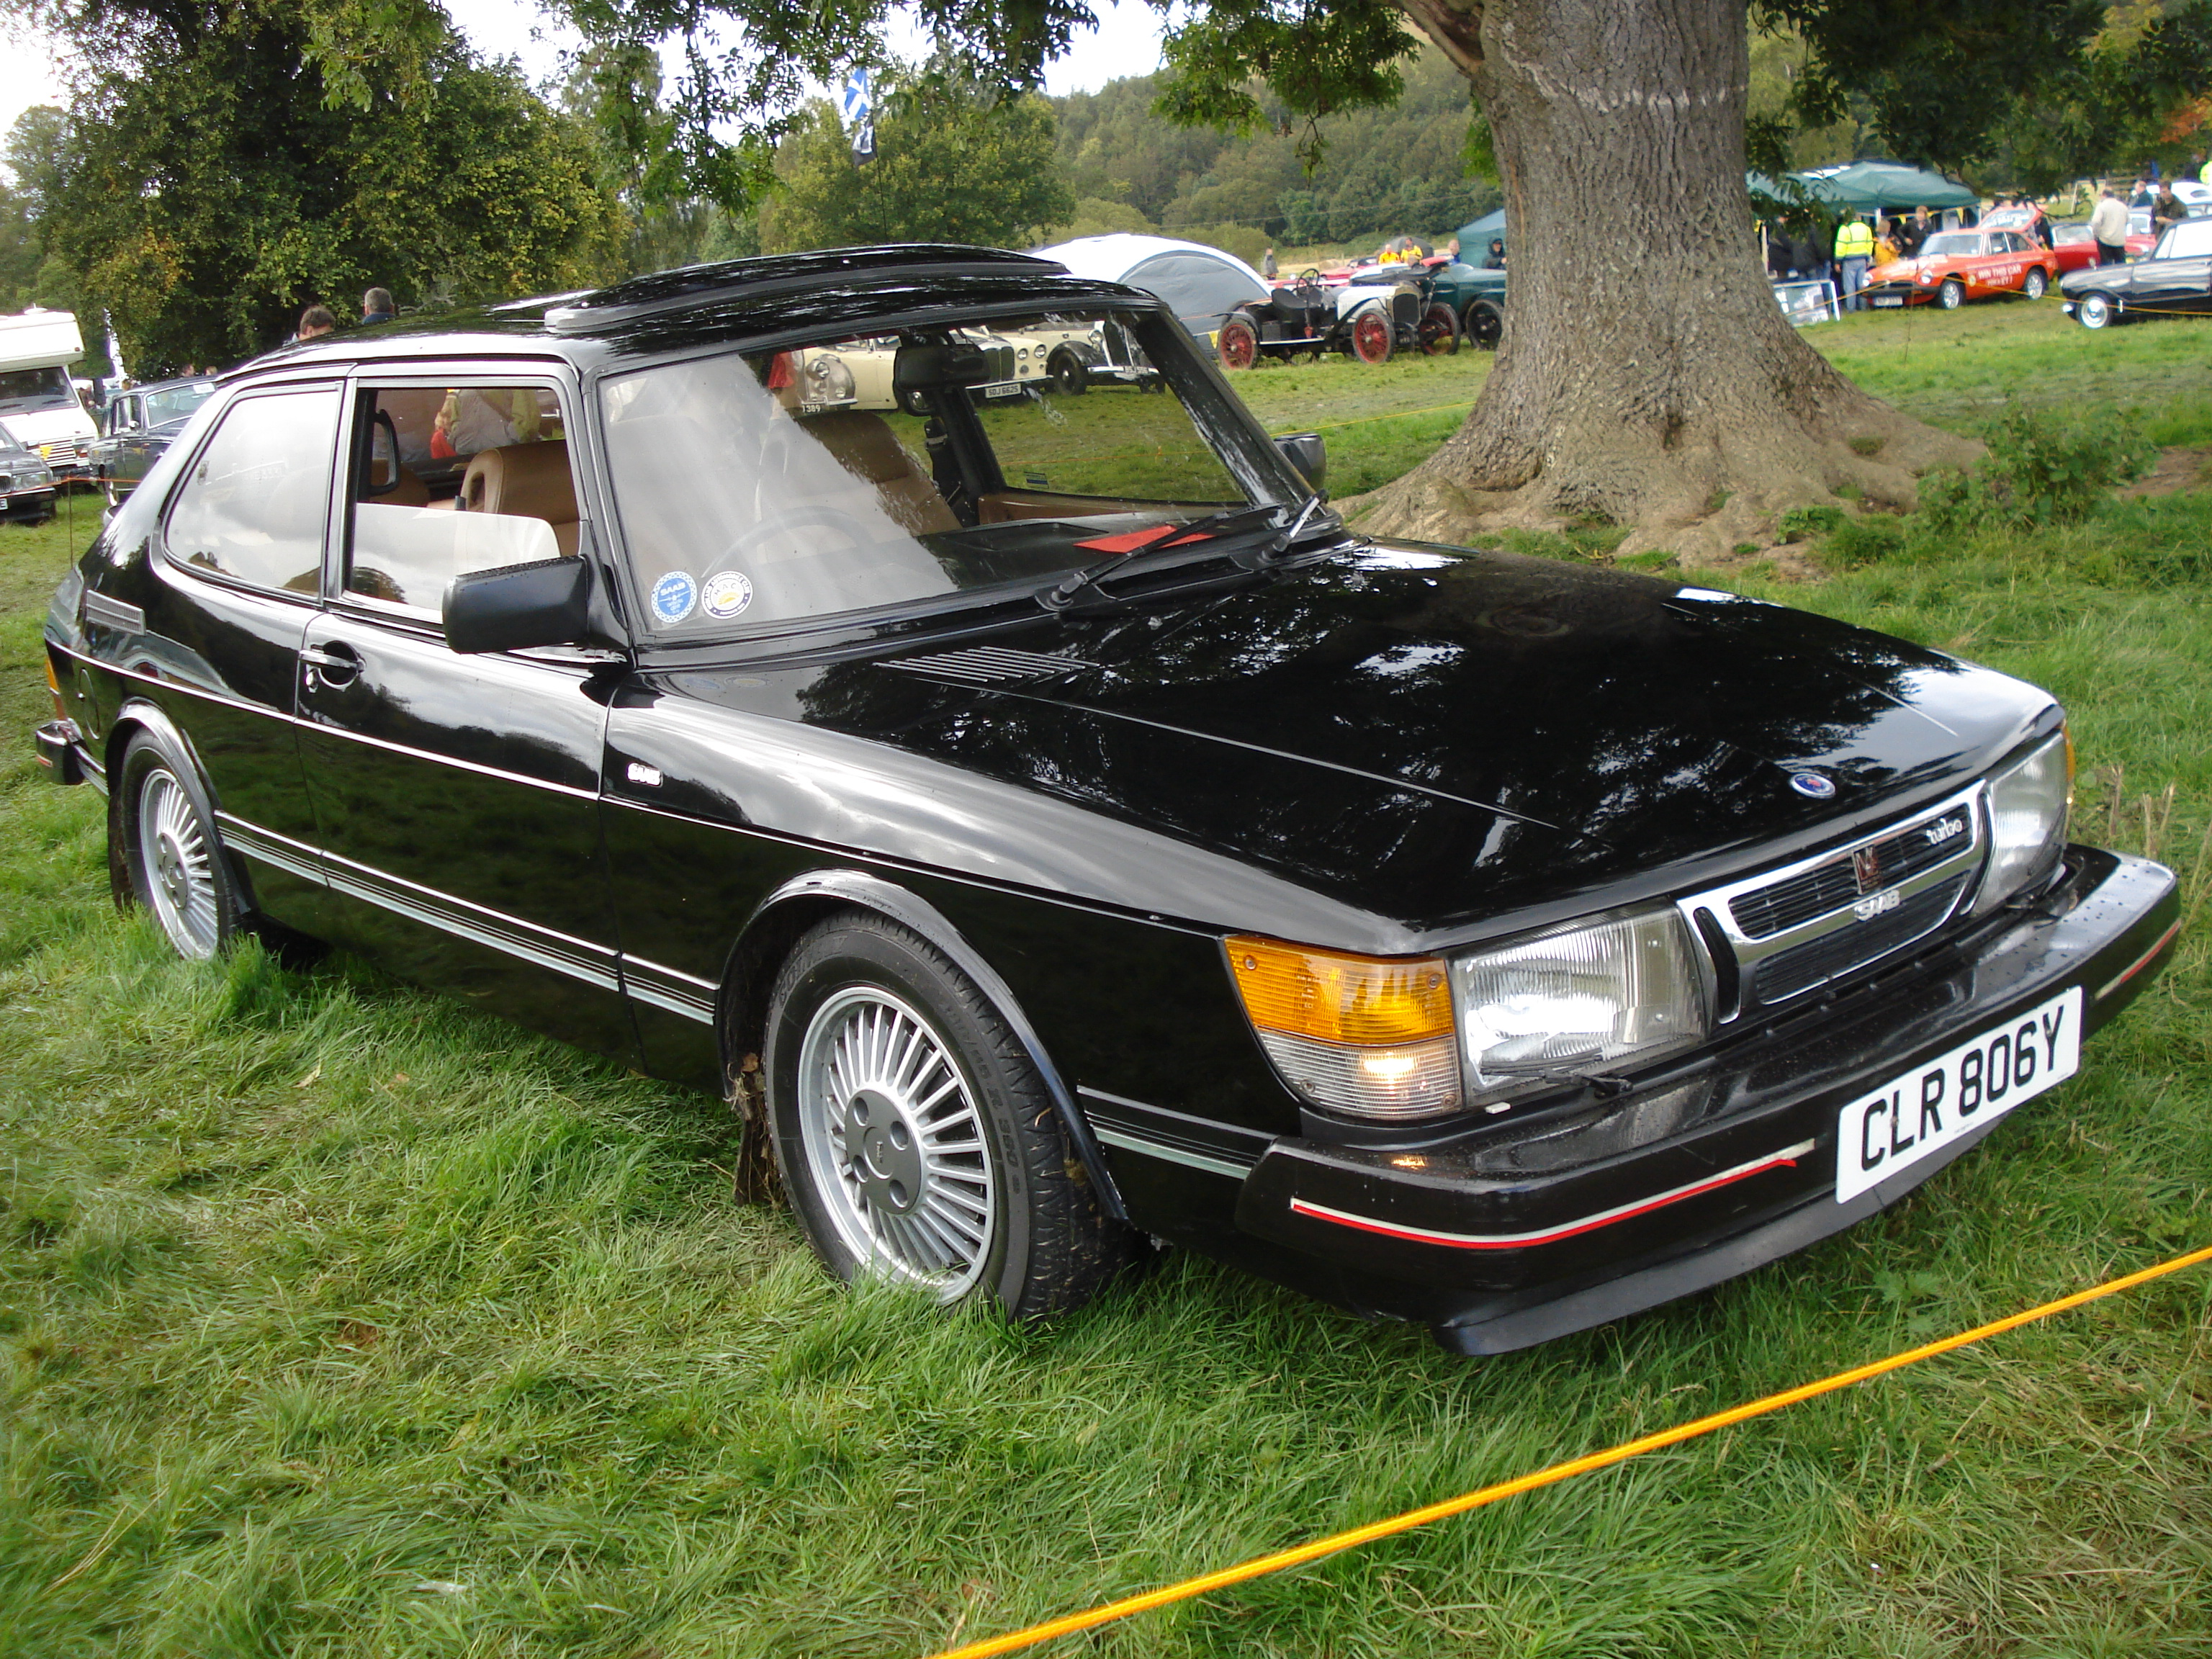 1983 Saab 900 Turbo | Flickr - Photo Sharing!